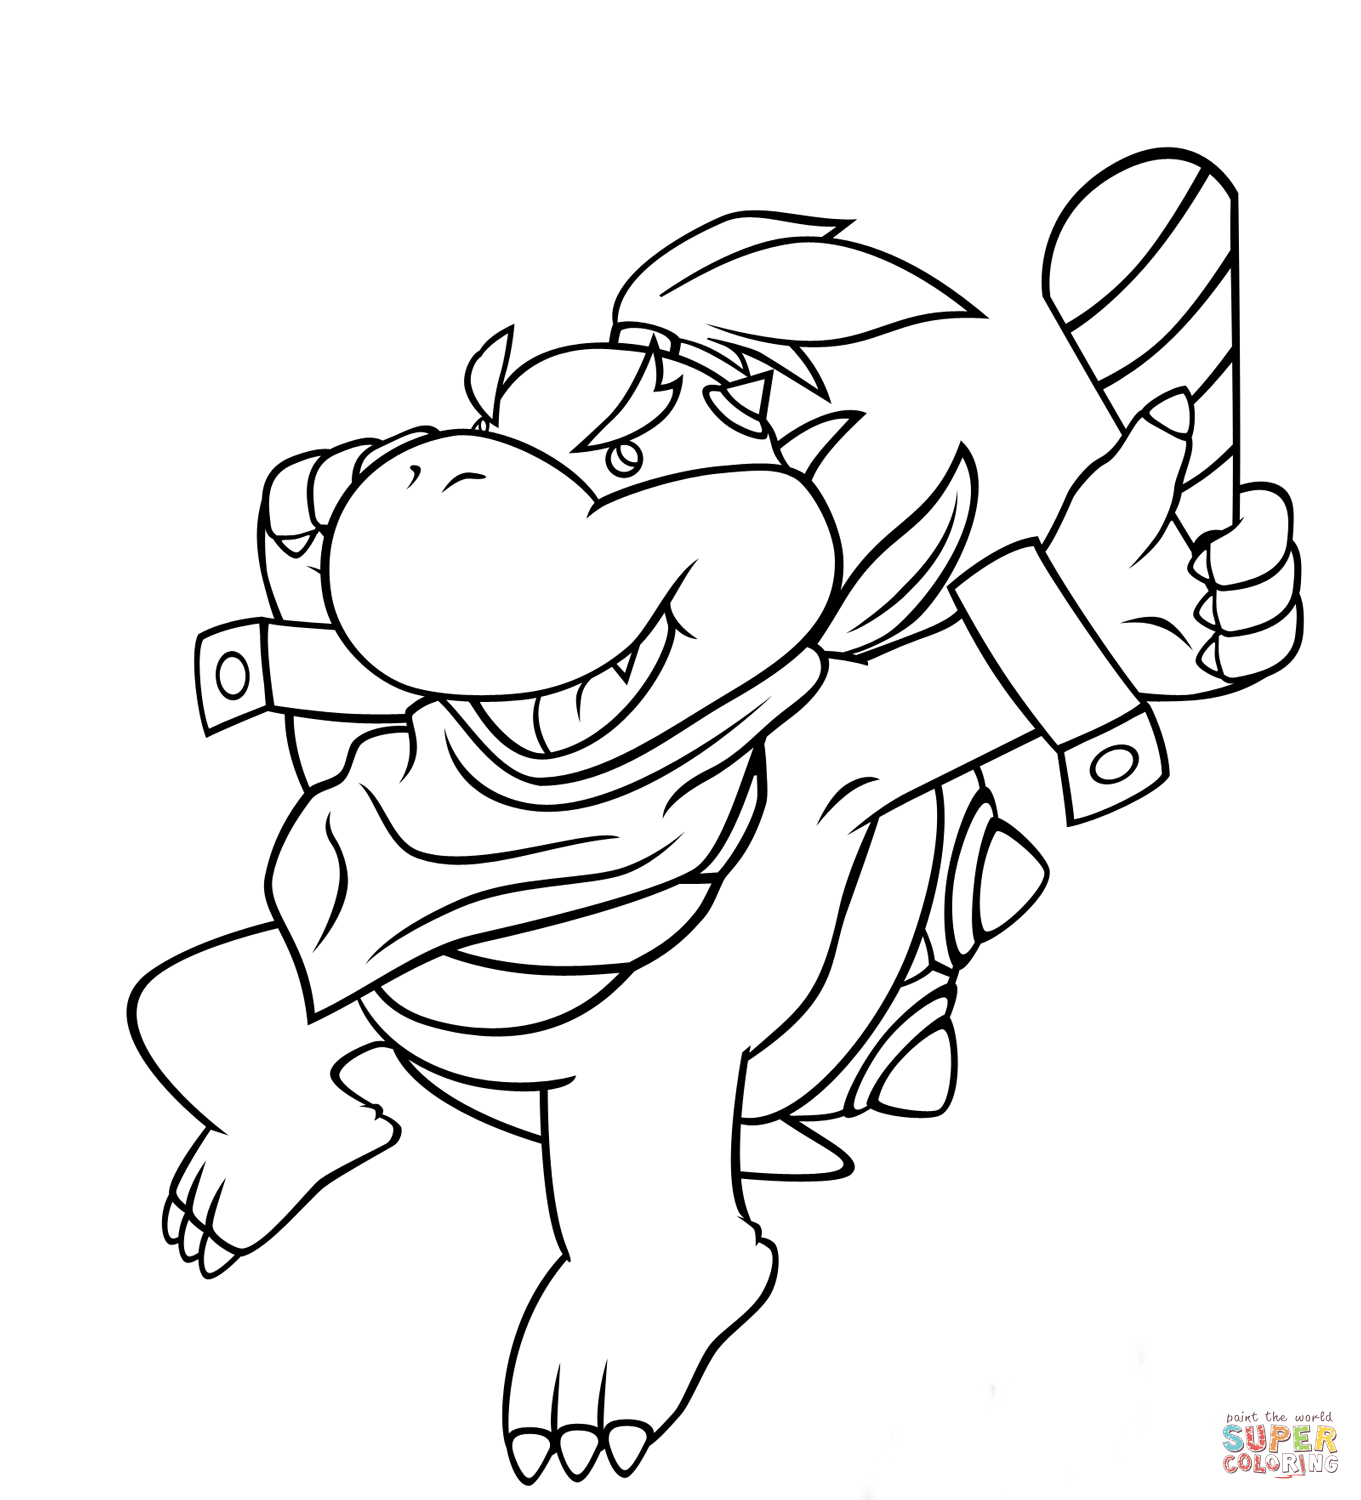 Bowser Jr Drawing at GetDrawings.com | Free for personal use Bowser ...